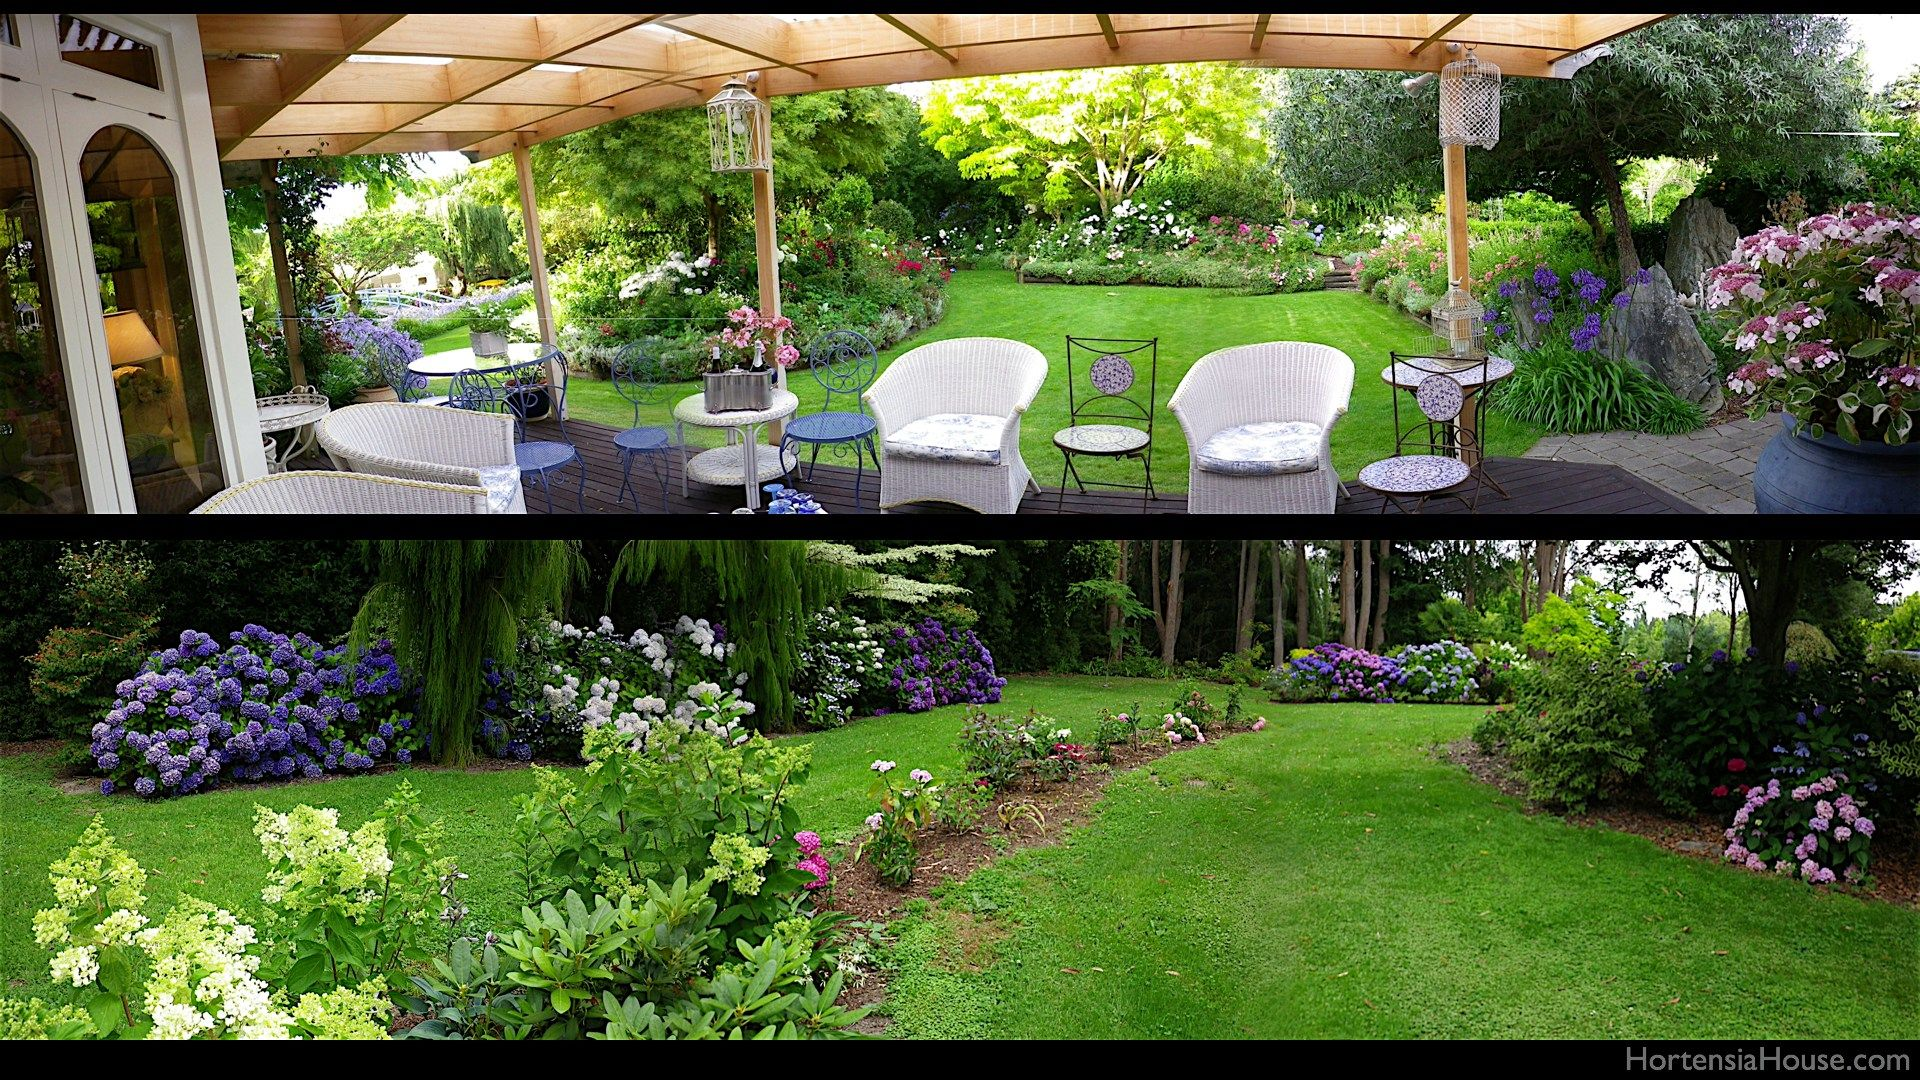 Hortensia house garden blenheim new zealand panoramas for Small house garden design